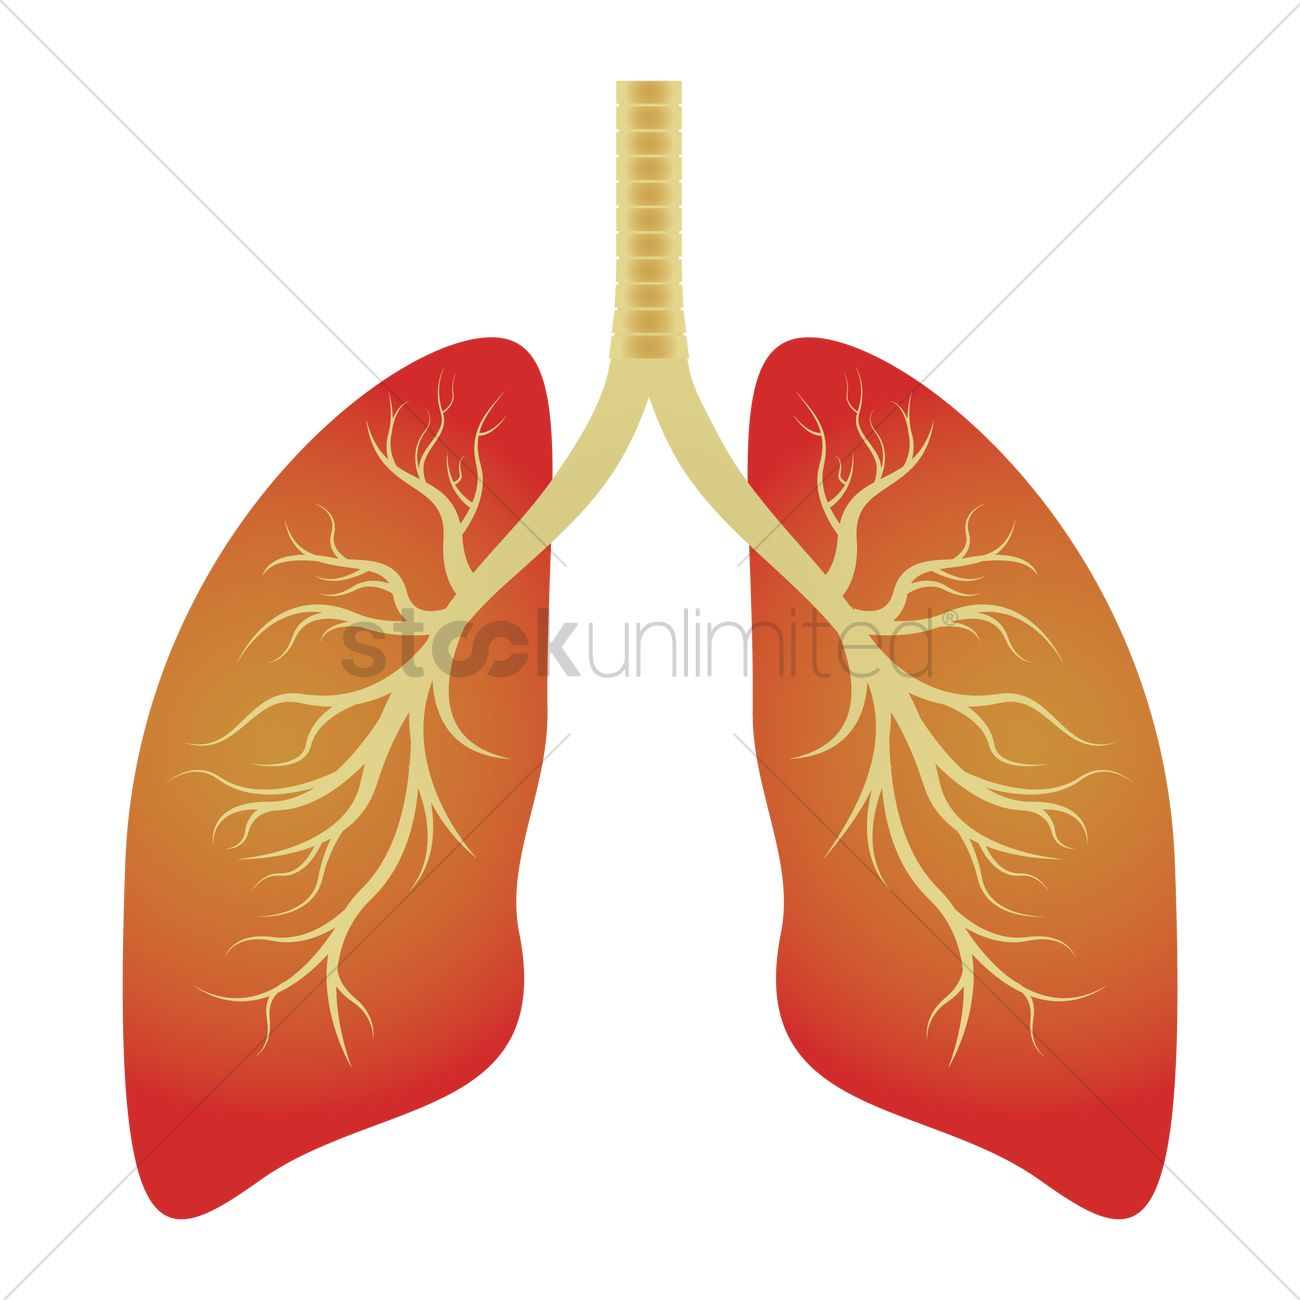 Human lungs Vector Image - 1866167 | StockUnlimited